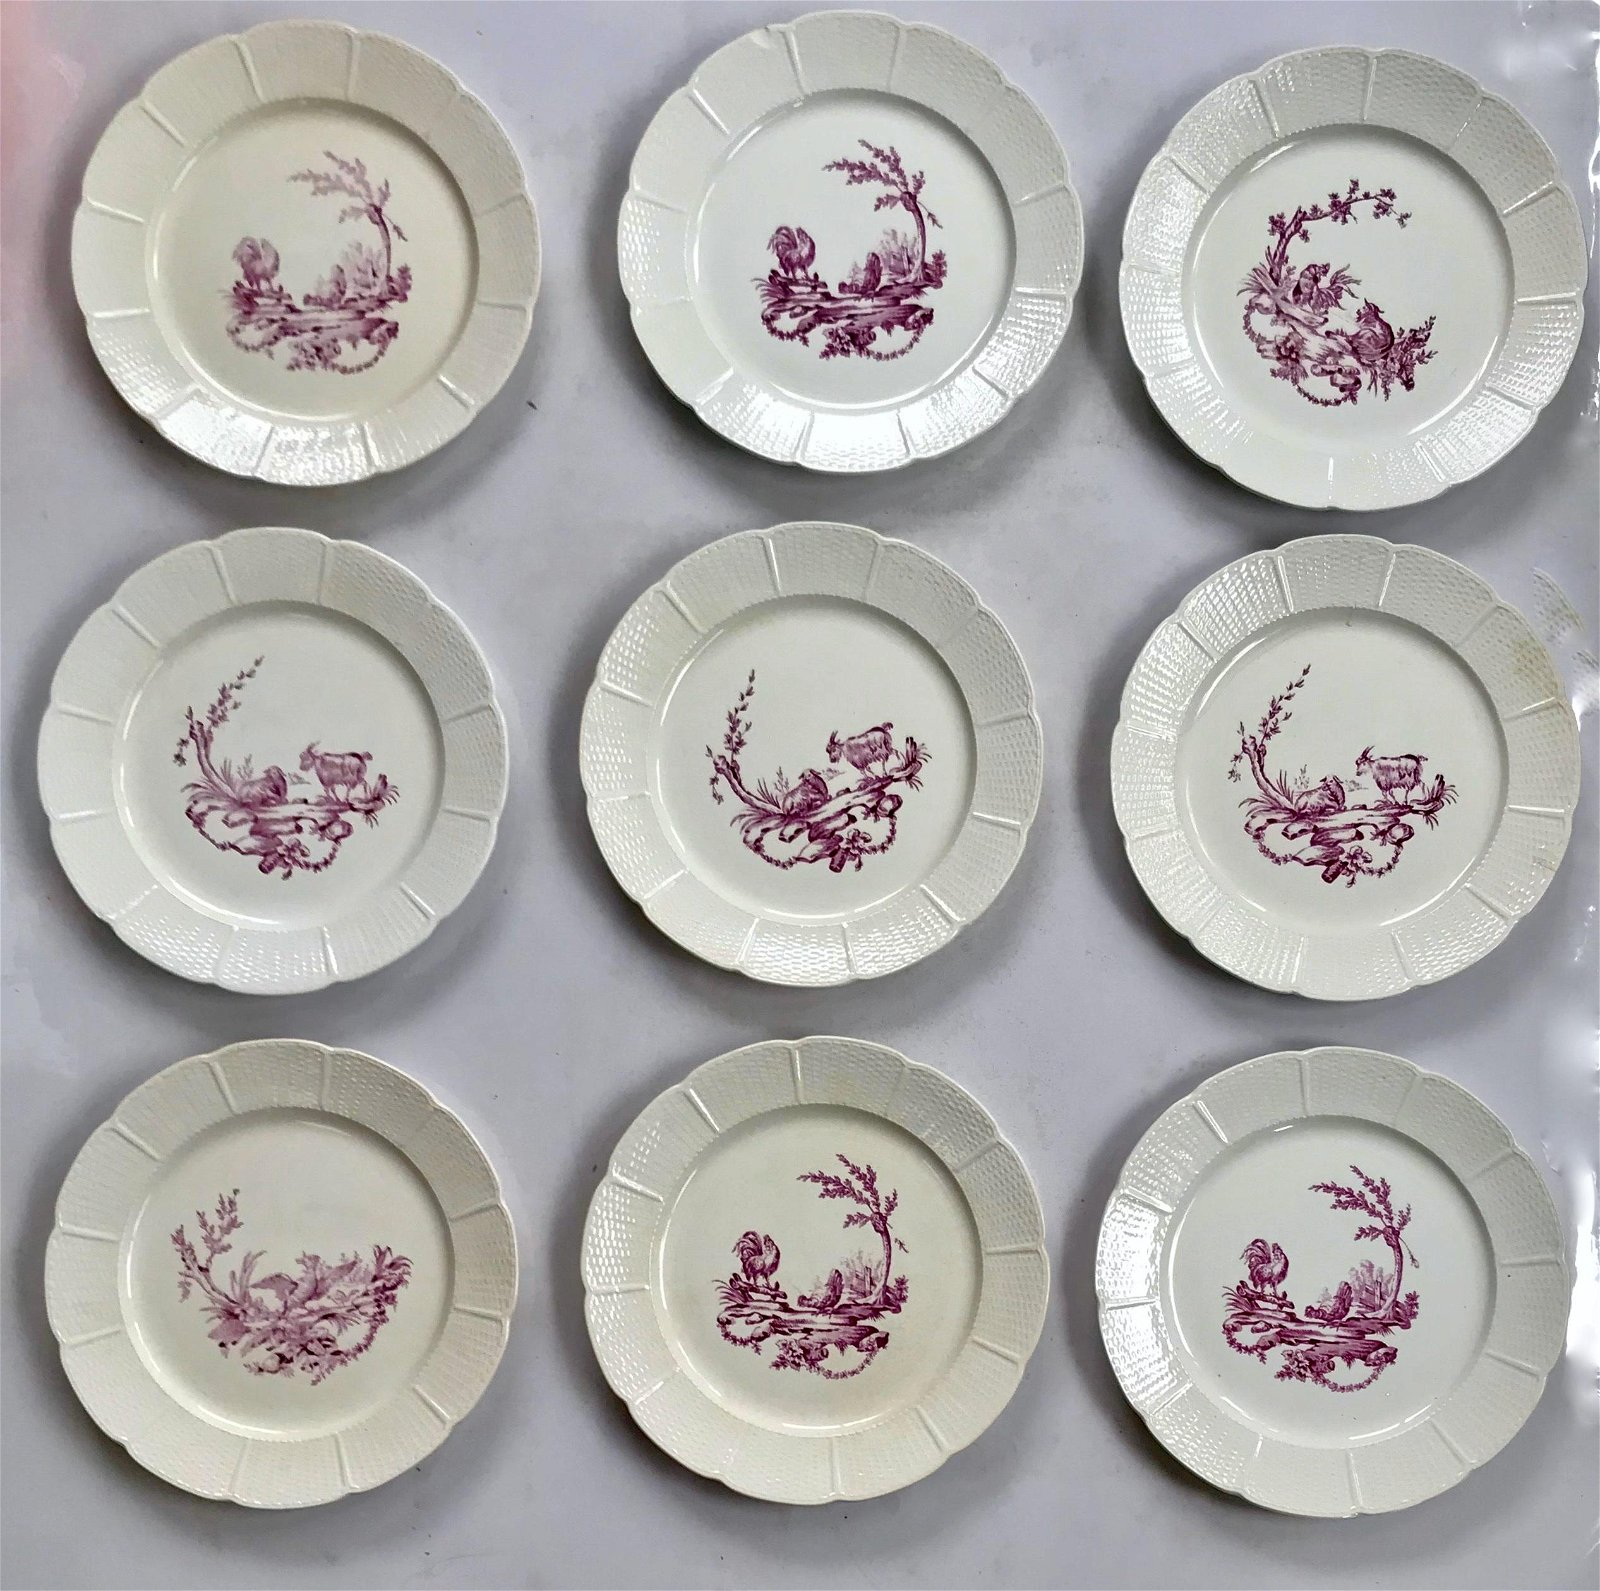 Antique Wedgwood Mennecy Dinner Plates, England (9)